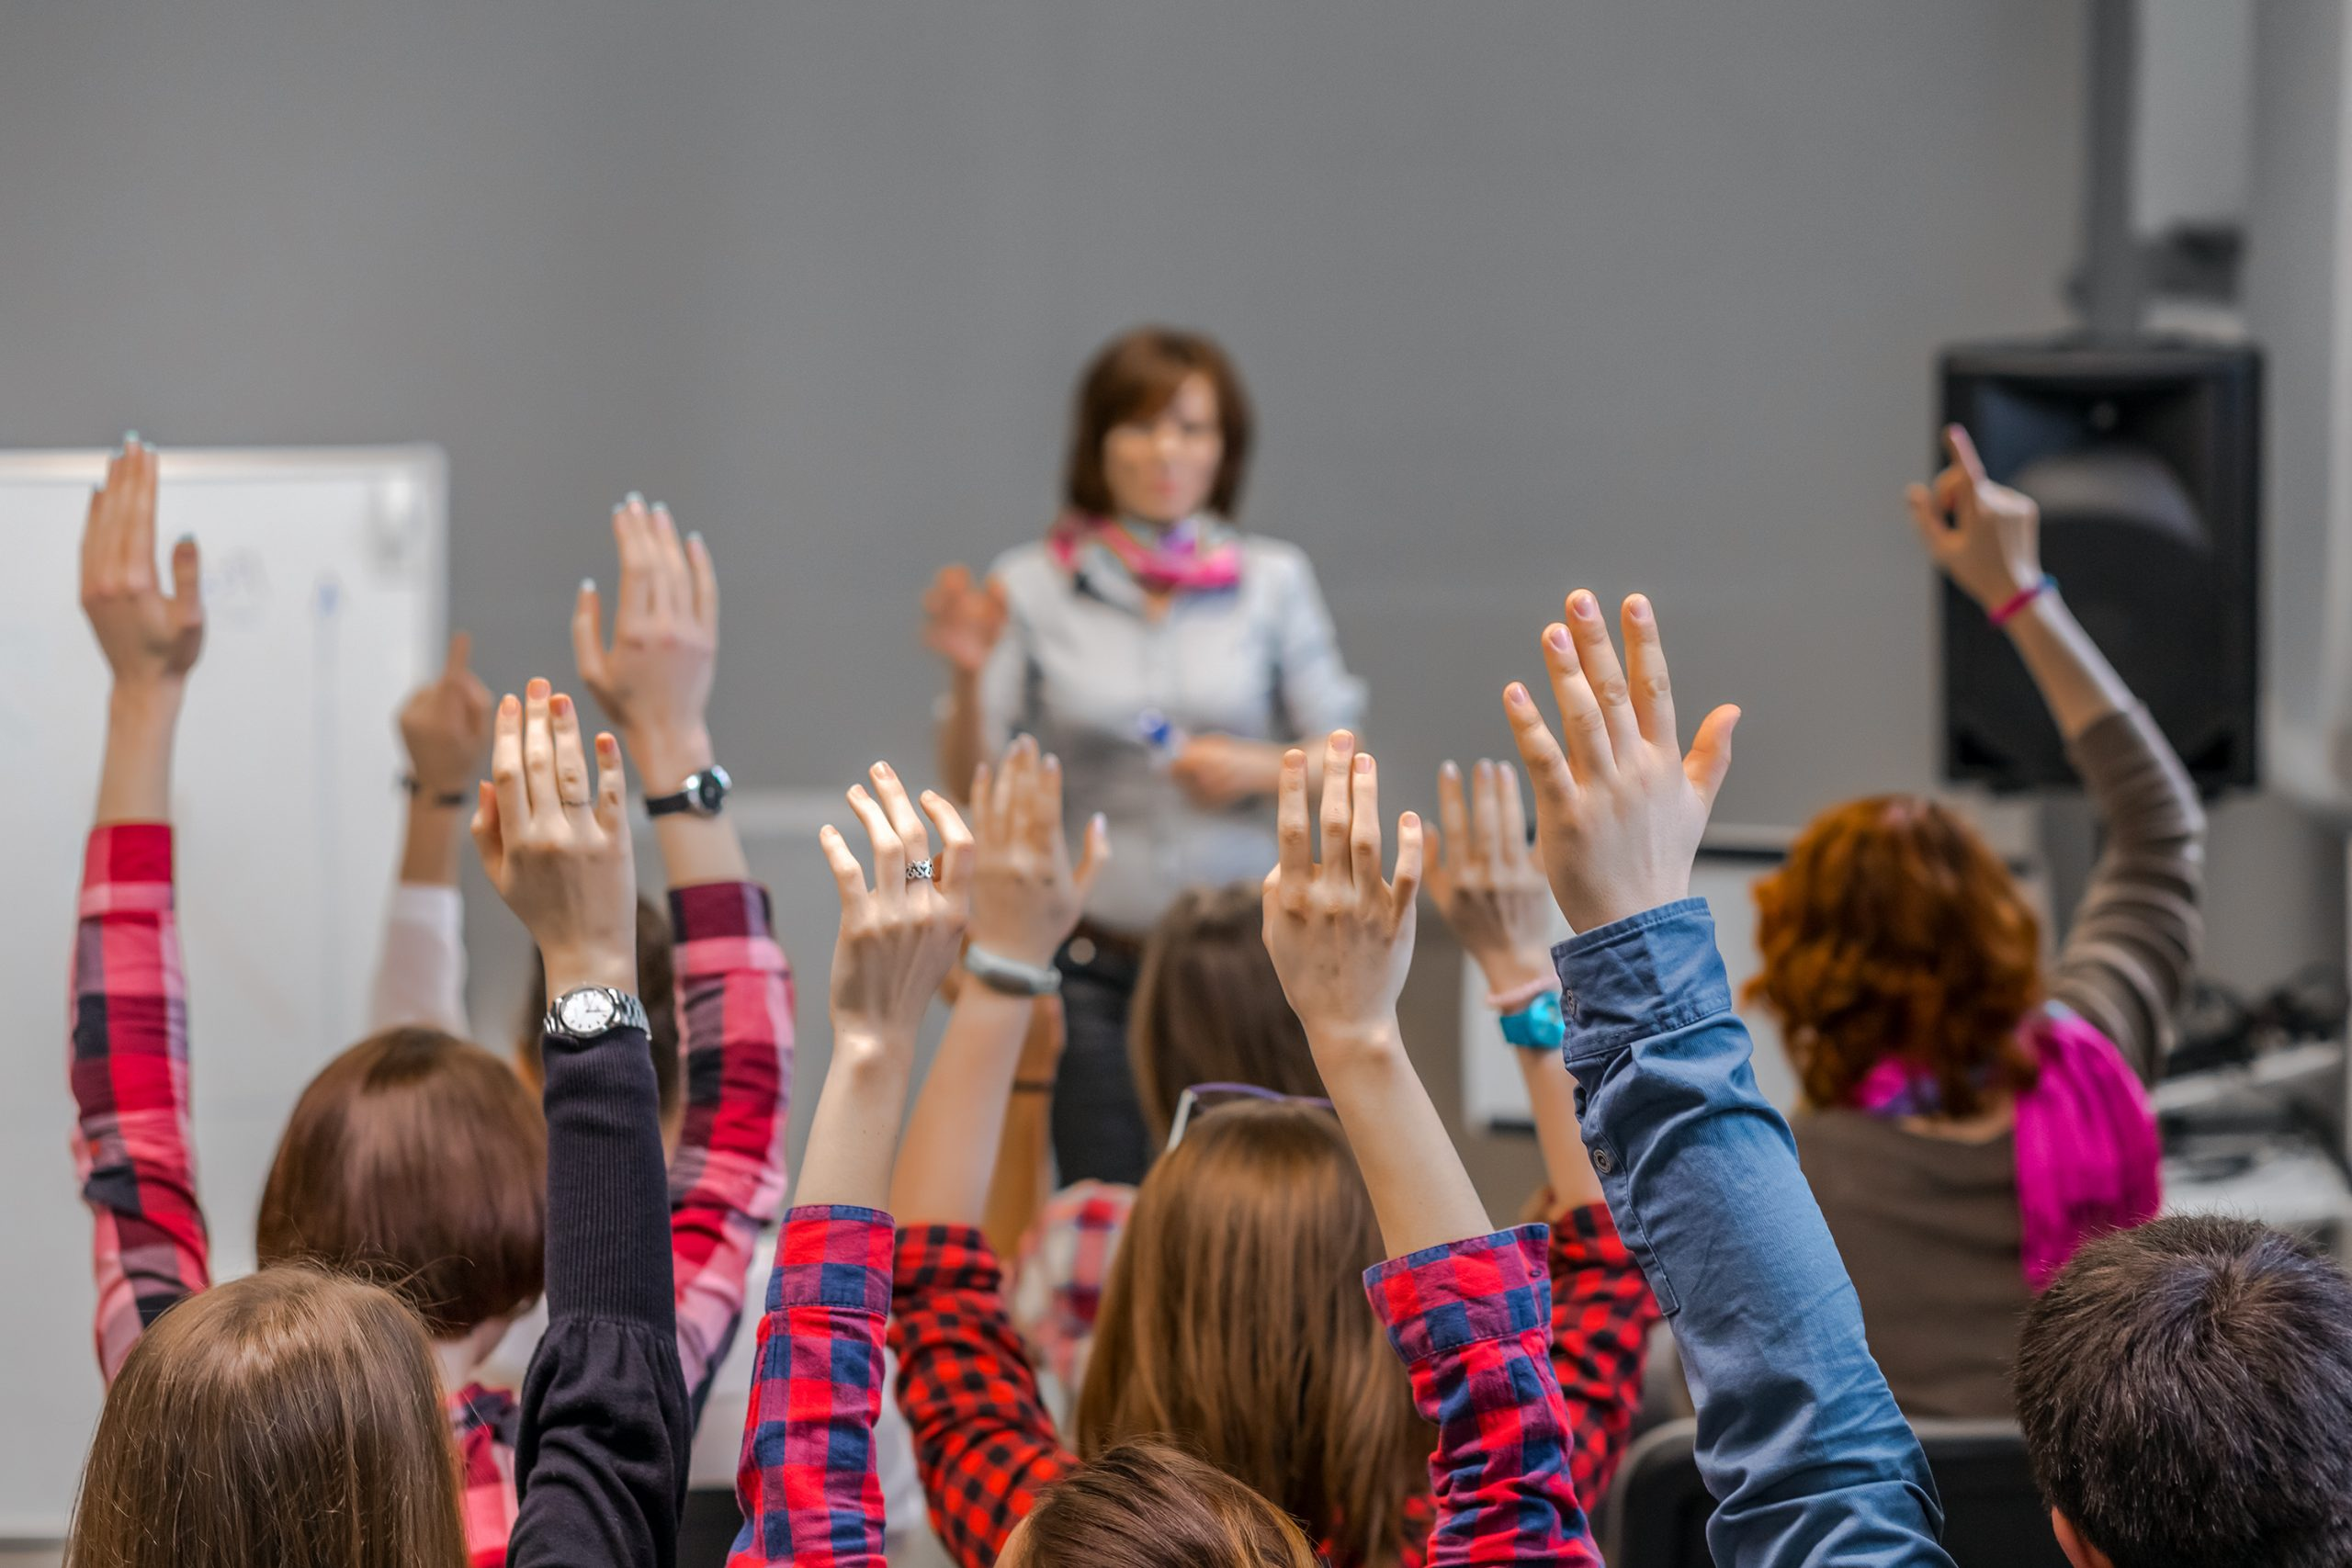 Students in a classroom raise their hands